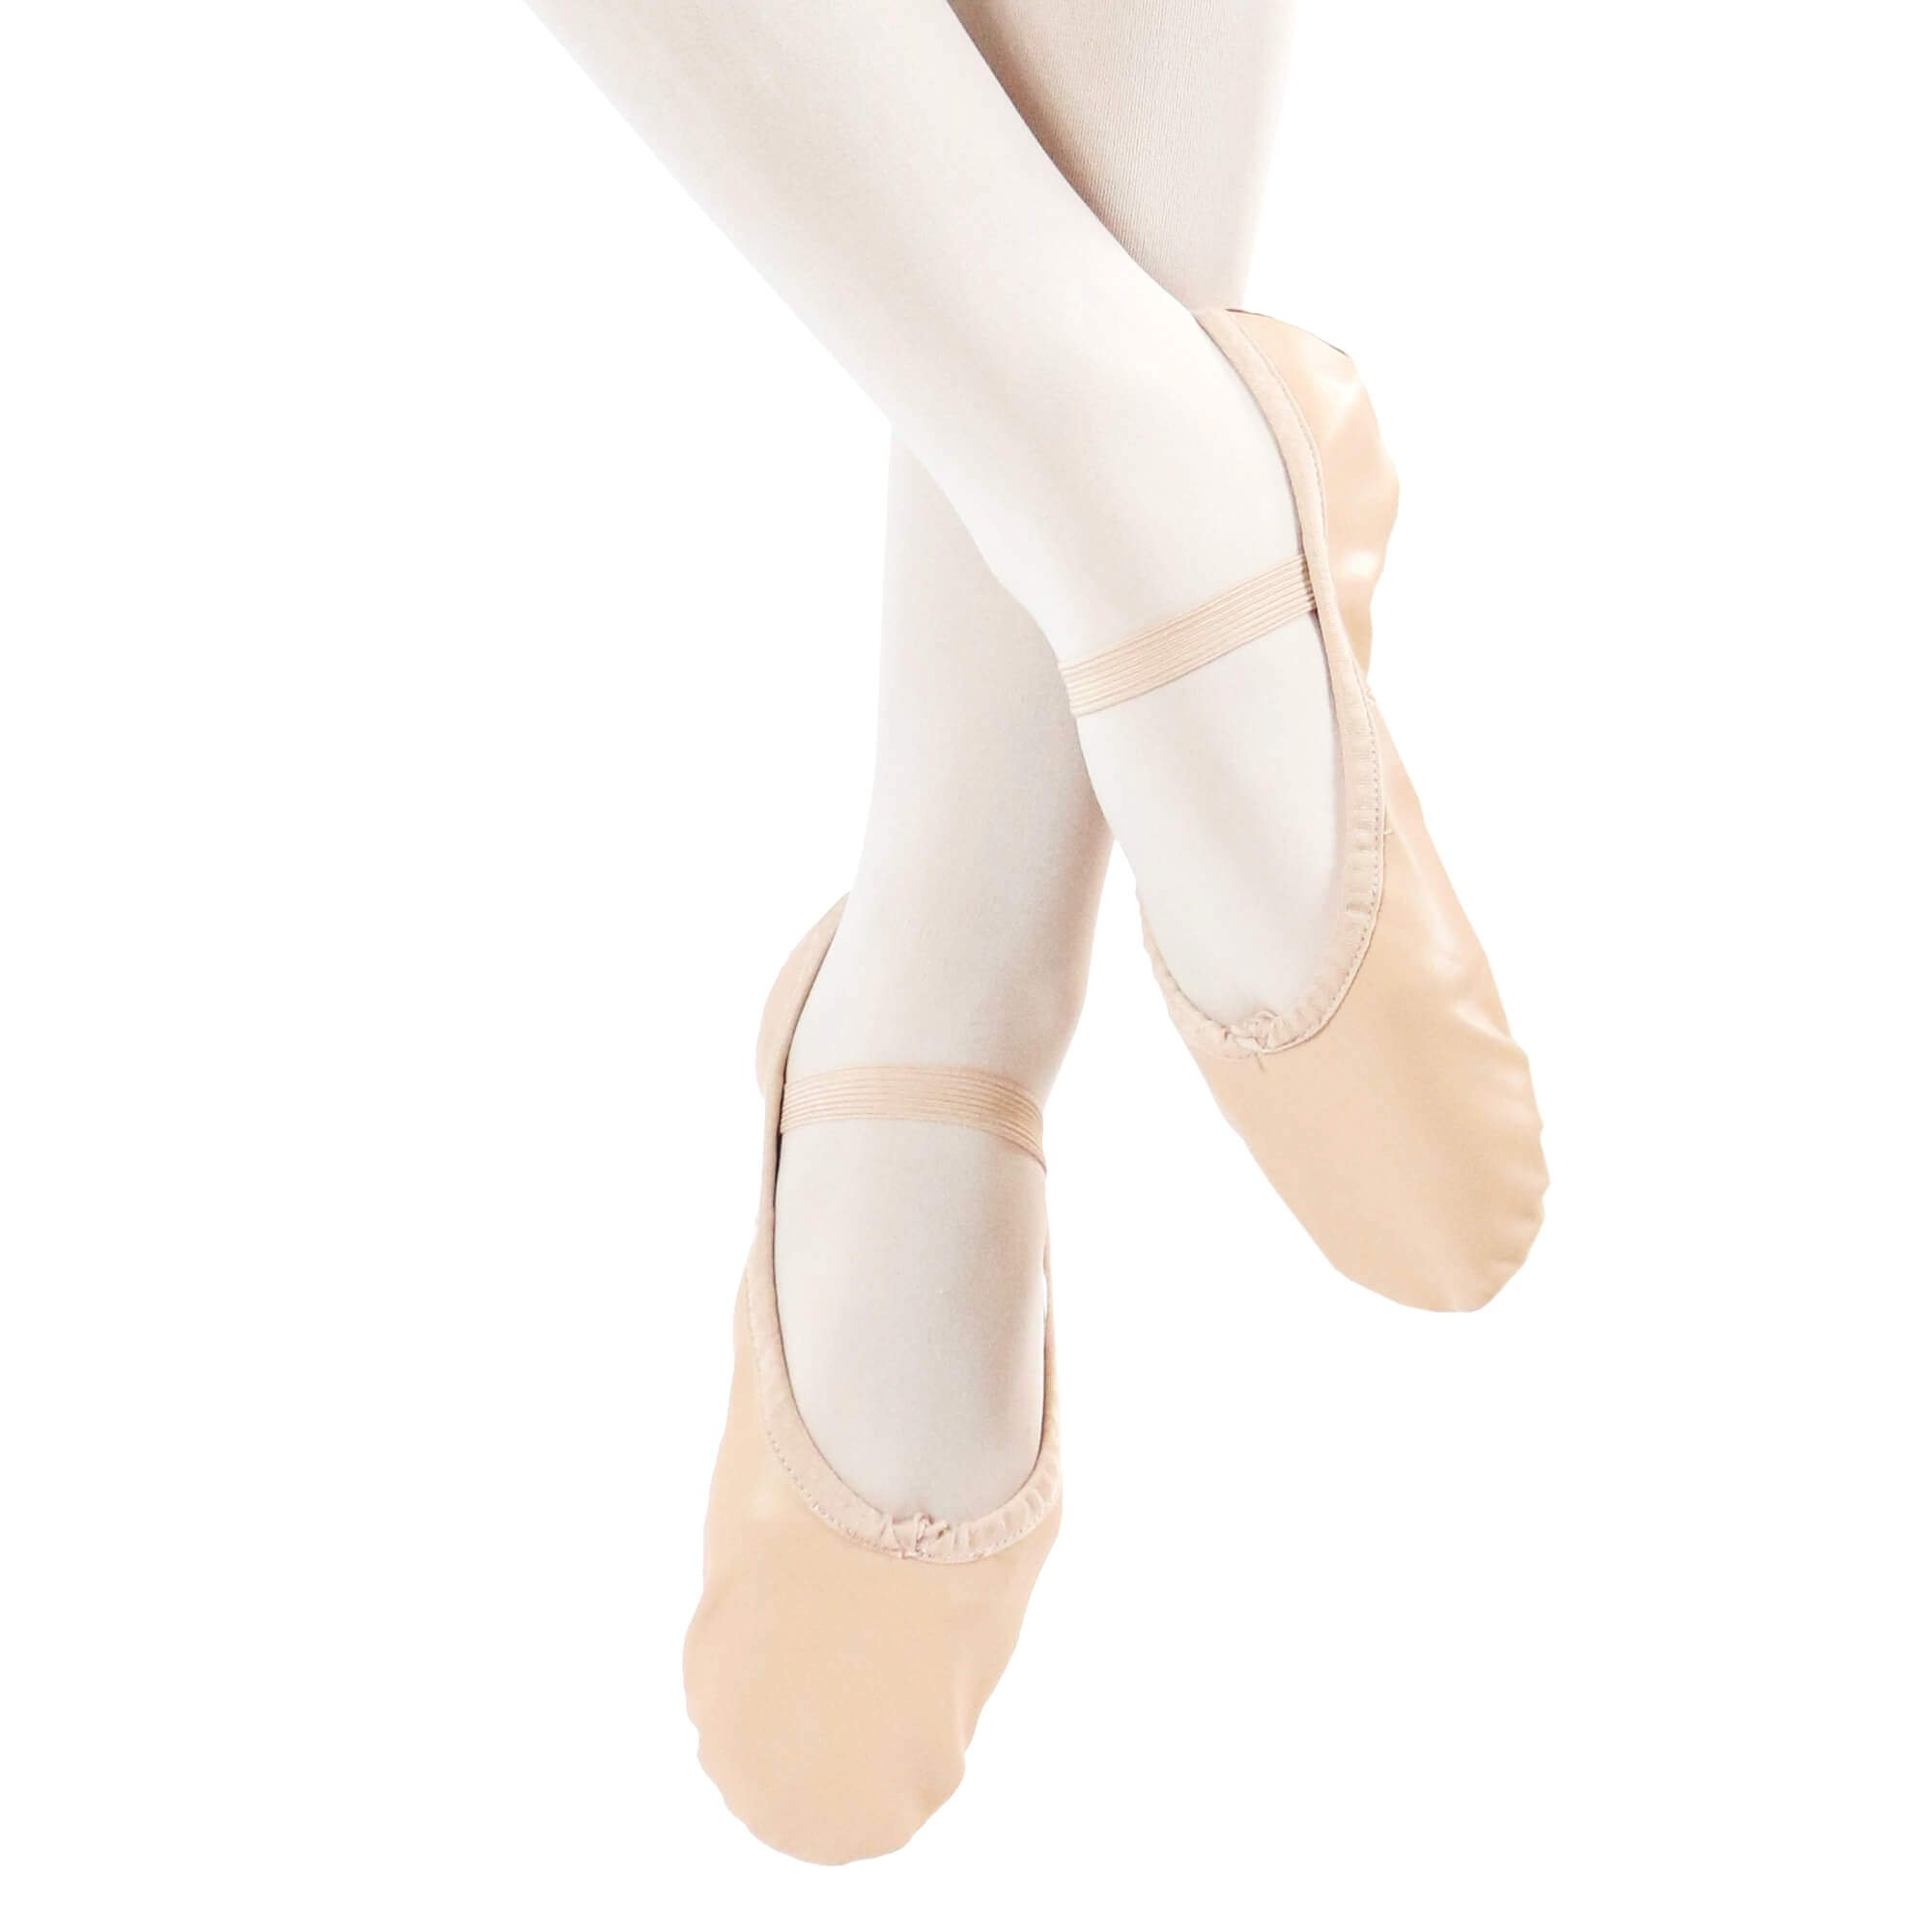 Danzcue Adult Full Sole Leather Ballet Dance Slipper